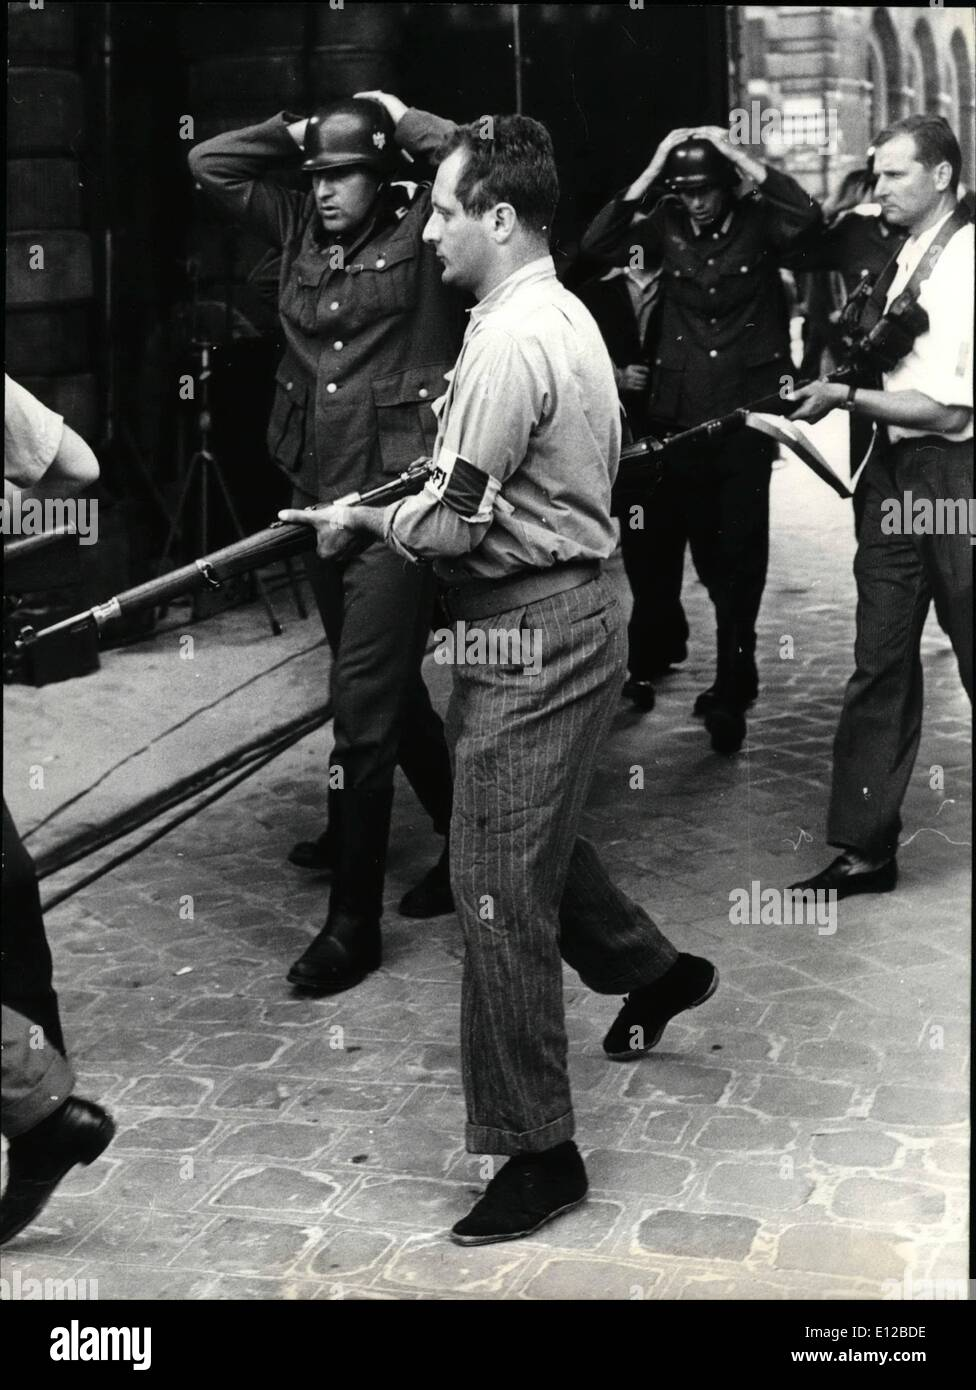 Dec. 09, 2011 - New Cinema Version of Liberation of Paris: A film reviving the glorious days of the liberation of Paris in August 1945 is now in the making. Photo shows German Soldiers surrounding TC armed resistants. - Stock Image